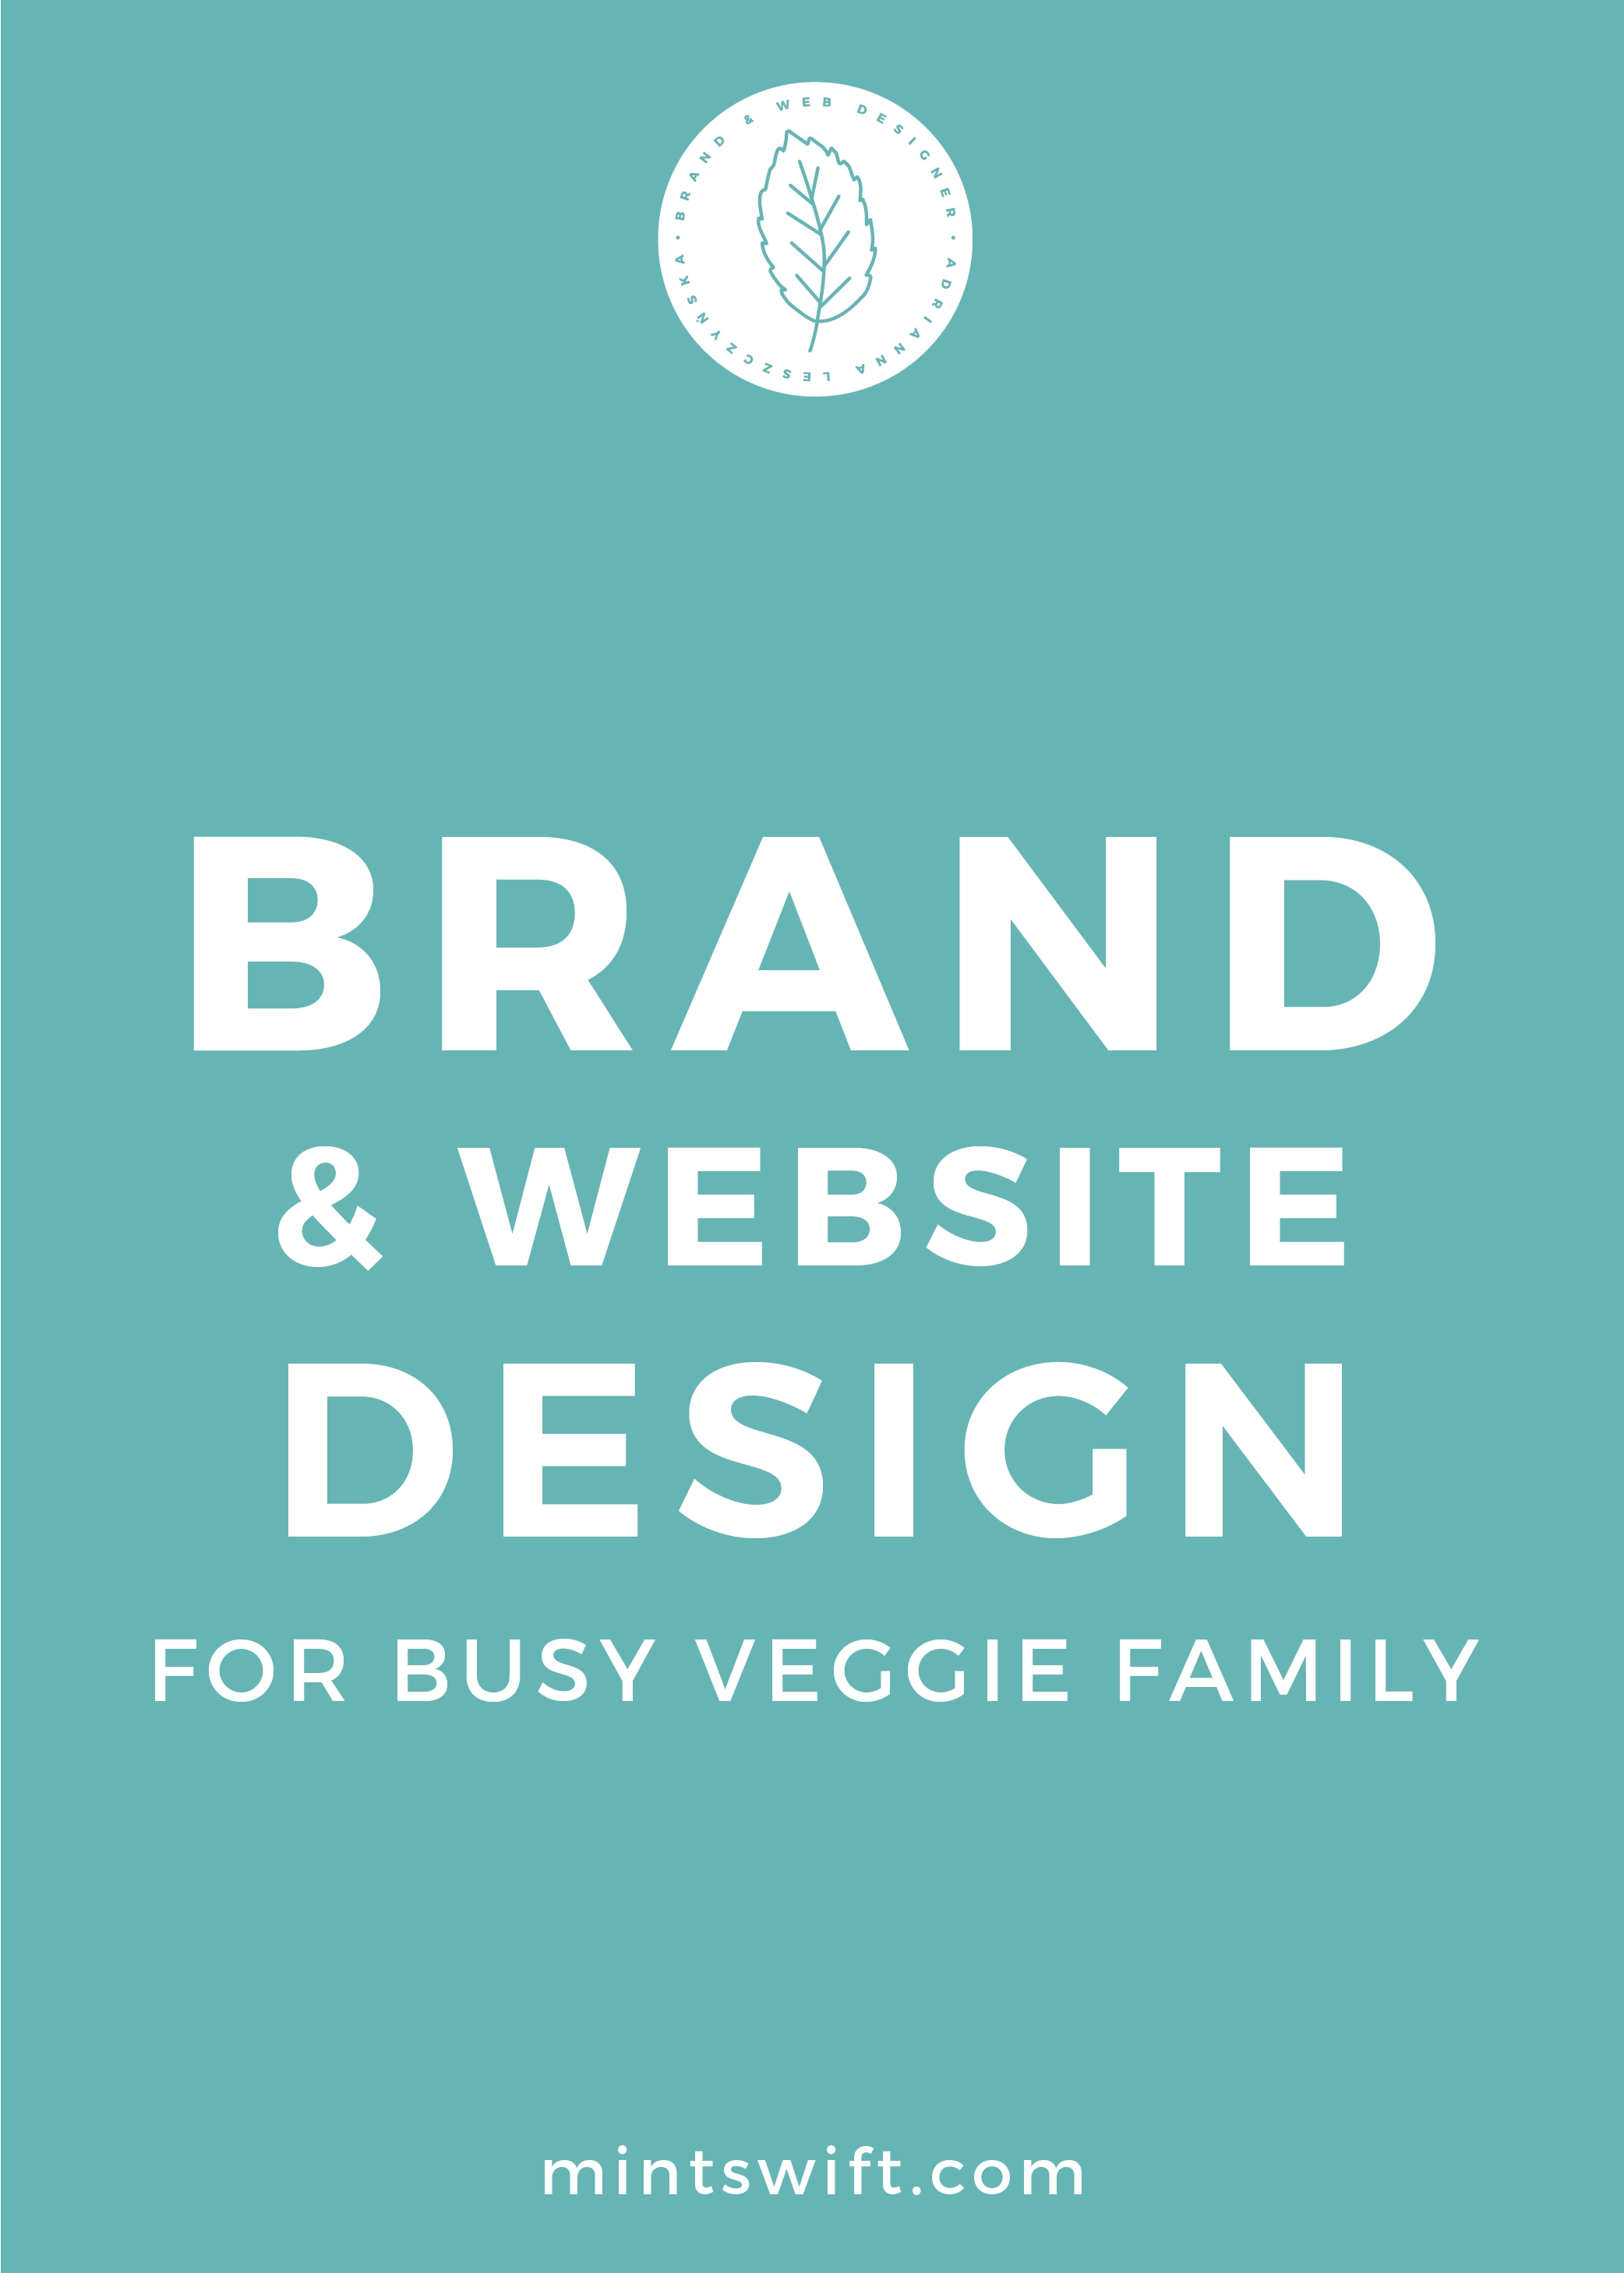 Brand & Website Design for Busy Veggie Family - MintSwift